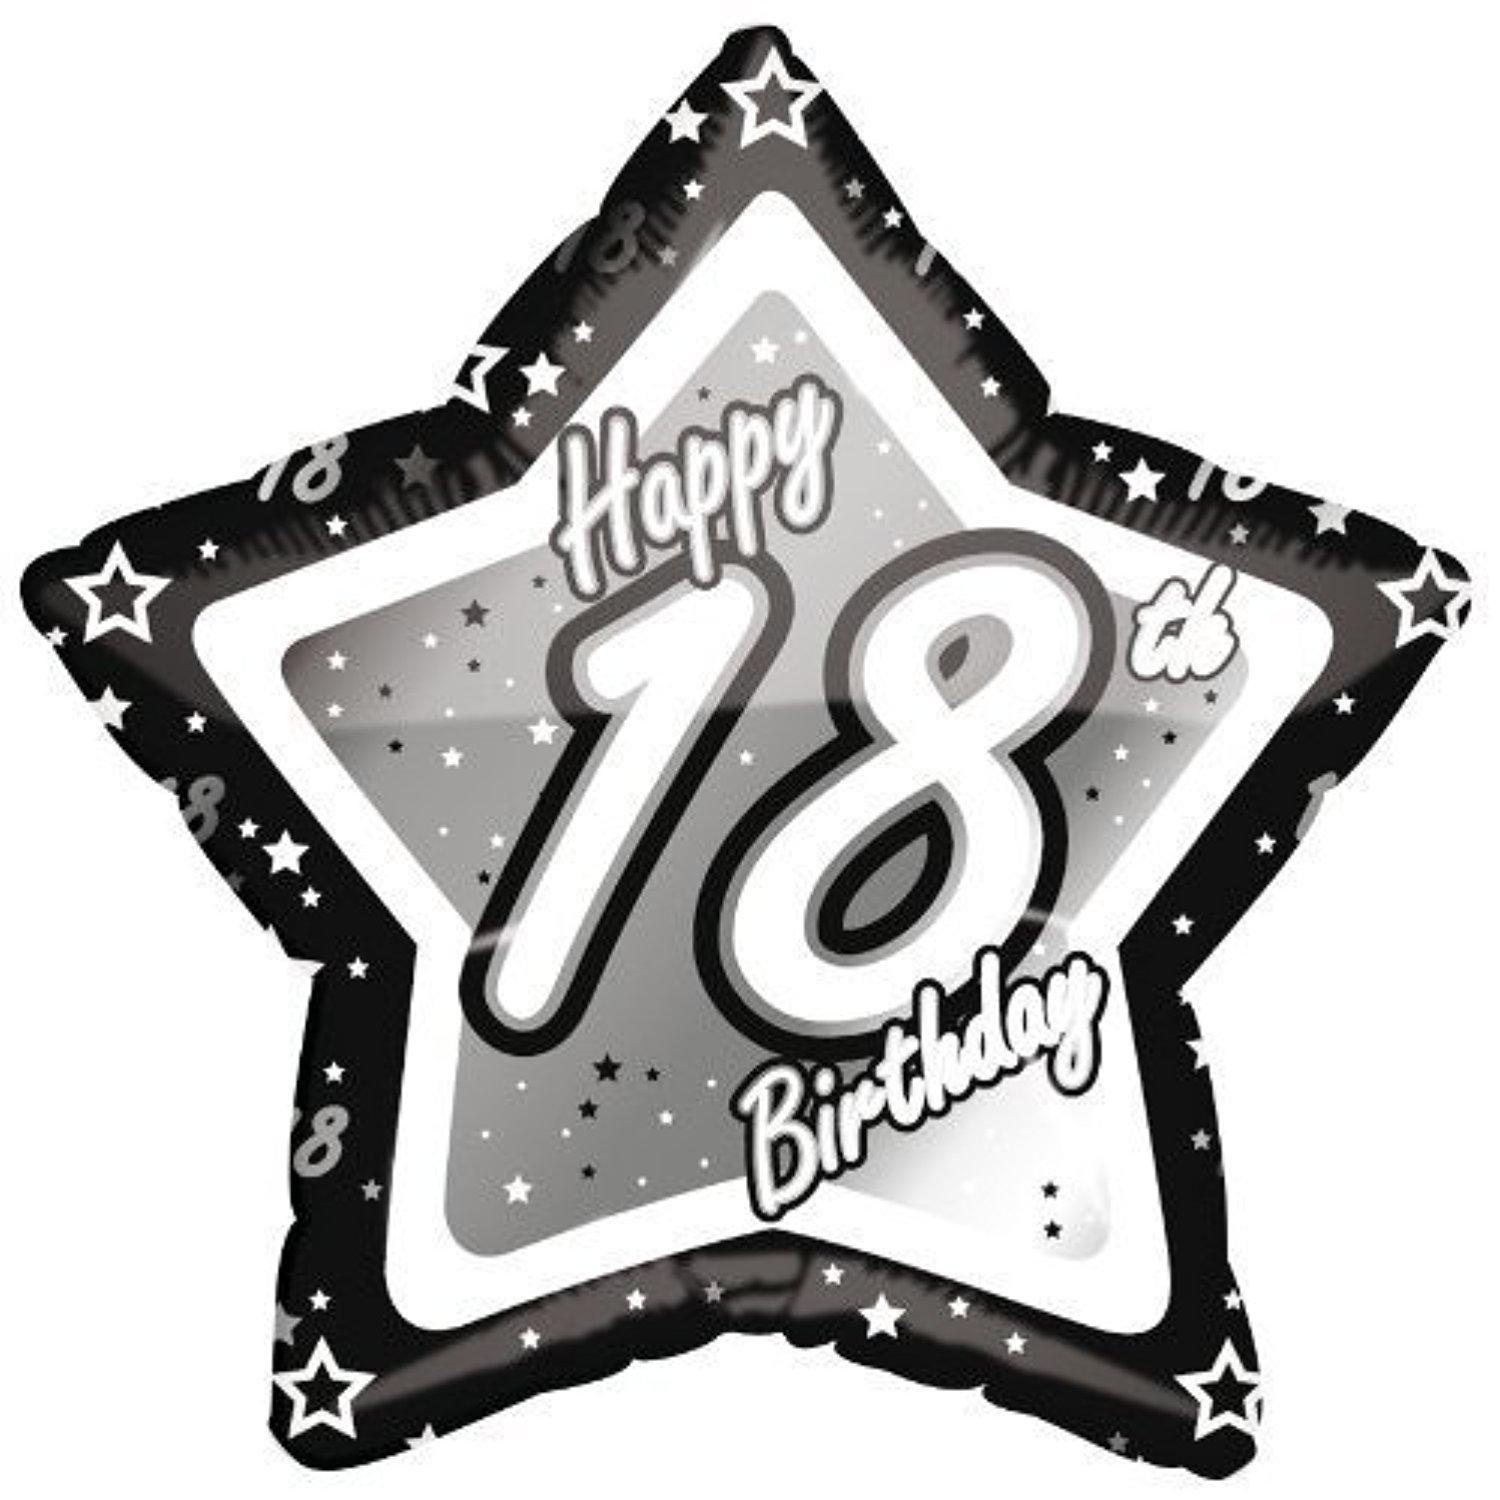 Age 18/Happy 18th Birthday Silver & Black 21 Foil Balloon by Black/Silver/White Balloons & Decorations